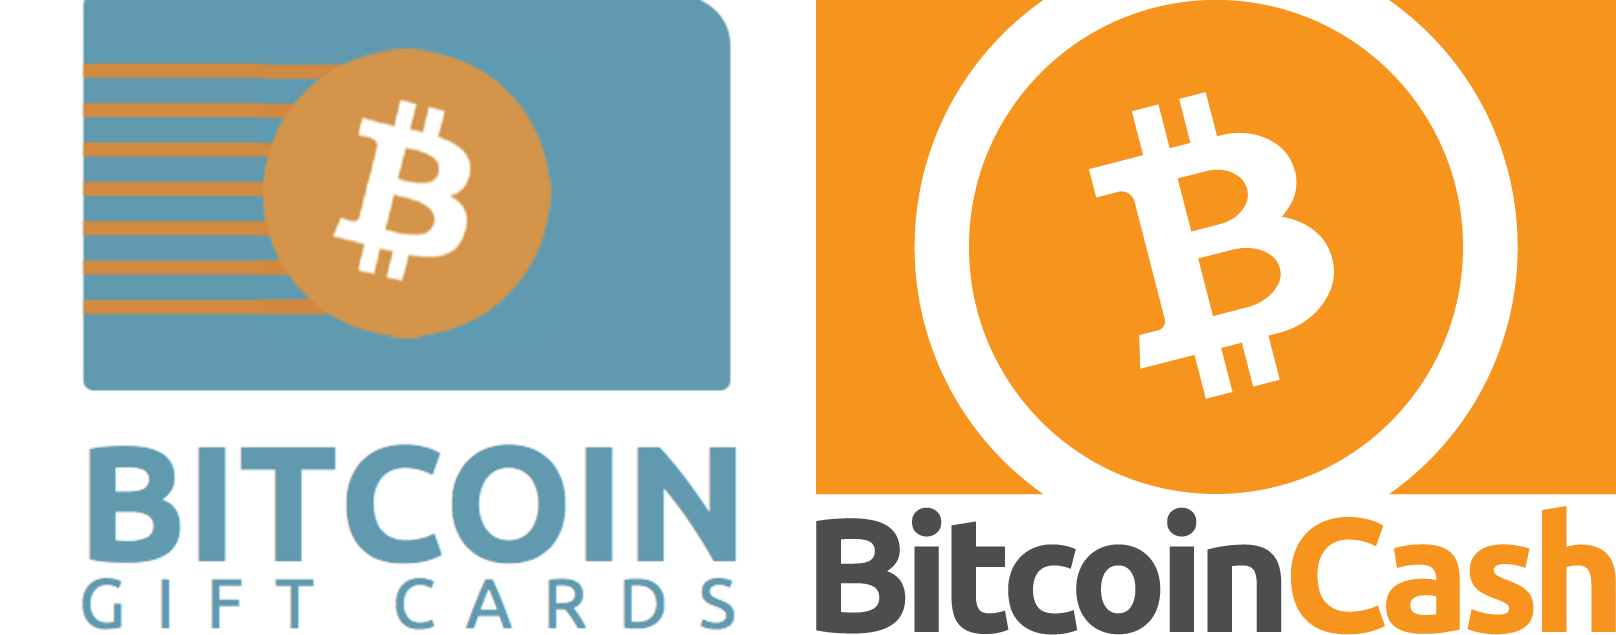 Bitcoin (Cash) Gift Cards